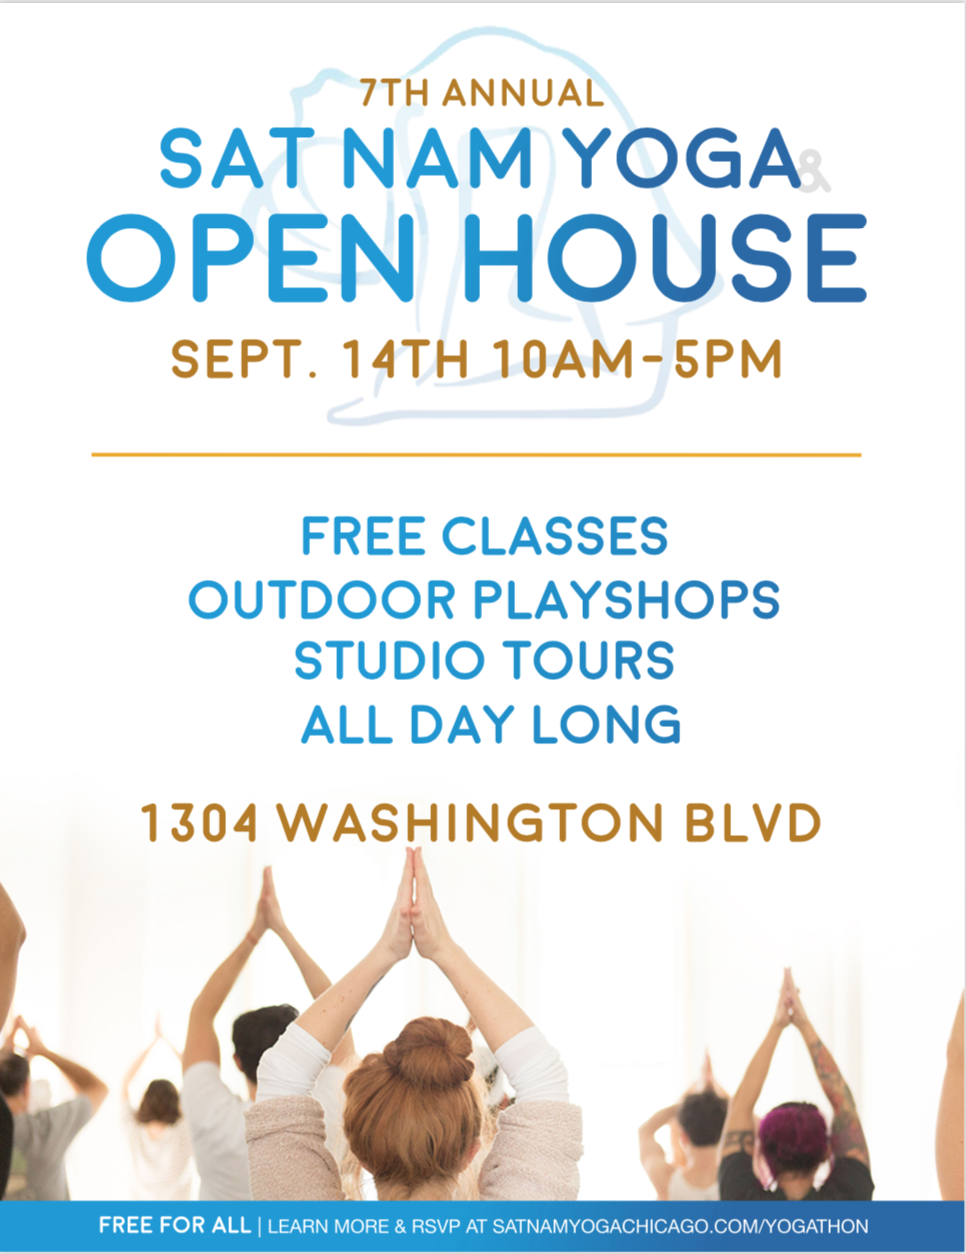 Sat Nam Yoga's 7th Annual Open House